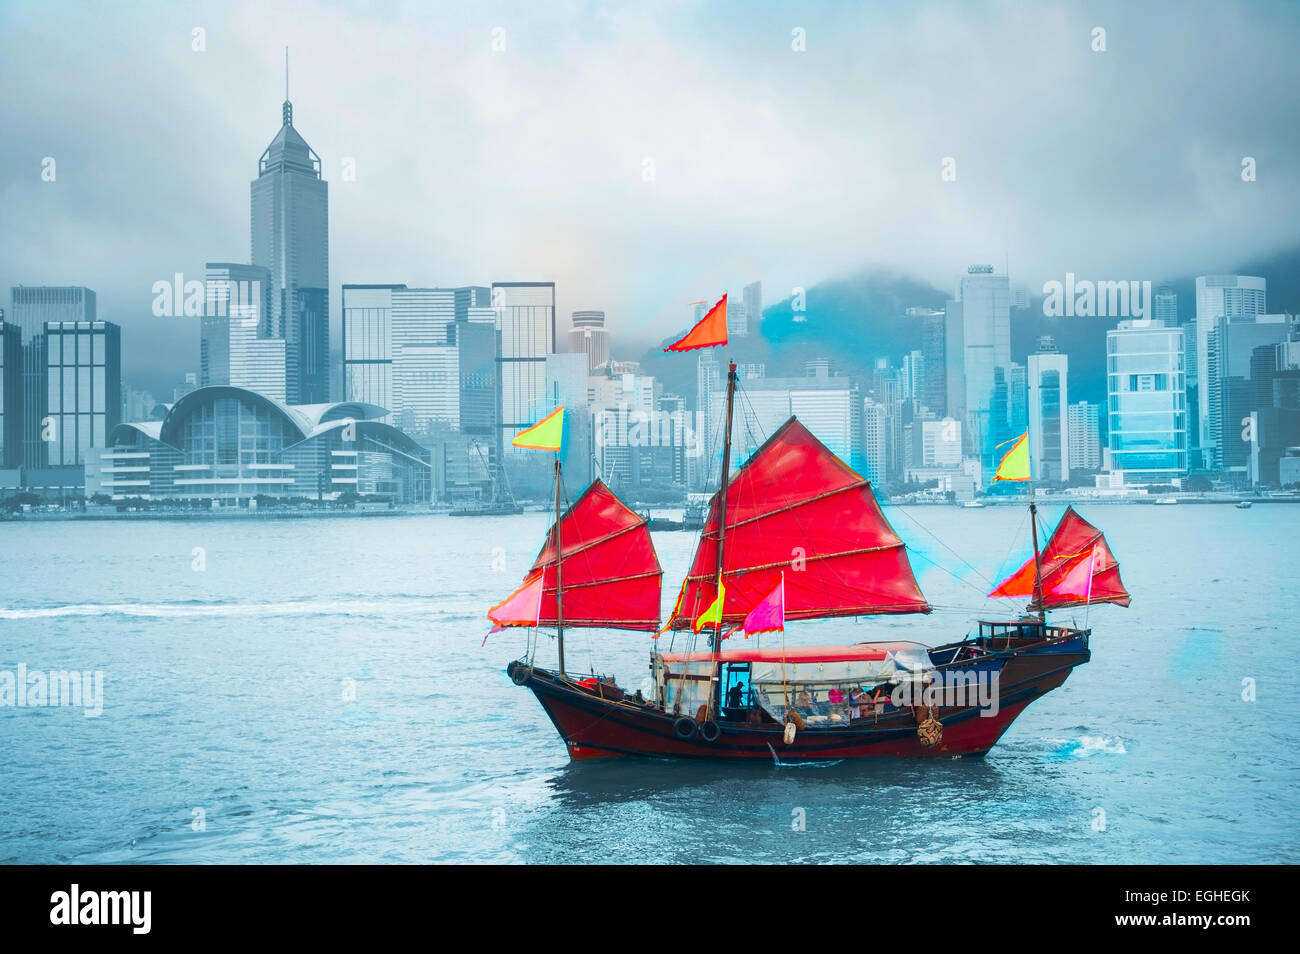 Symbol of Hong Kong - traditional wooden sailboat in Victoria harbor. - Stock Image